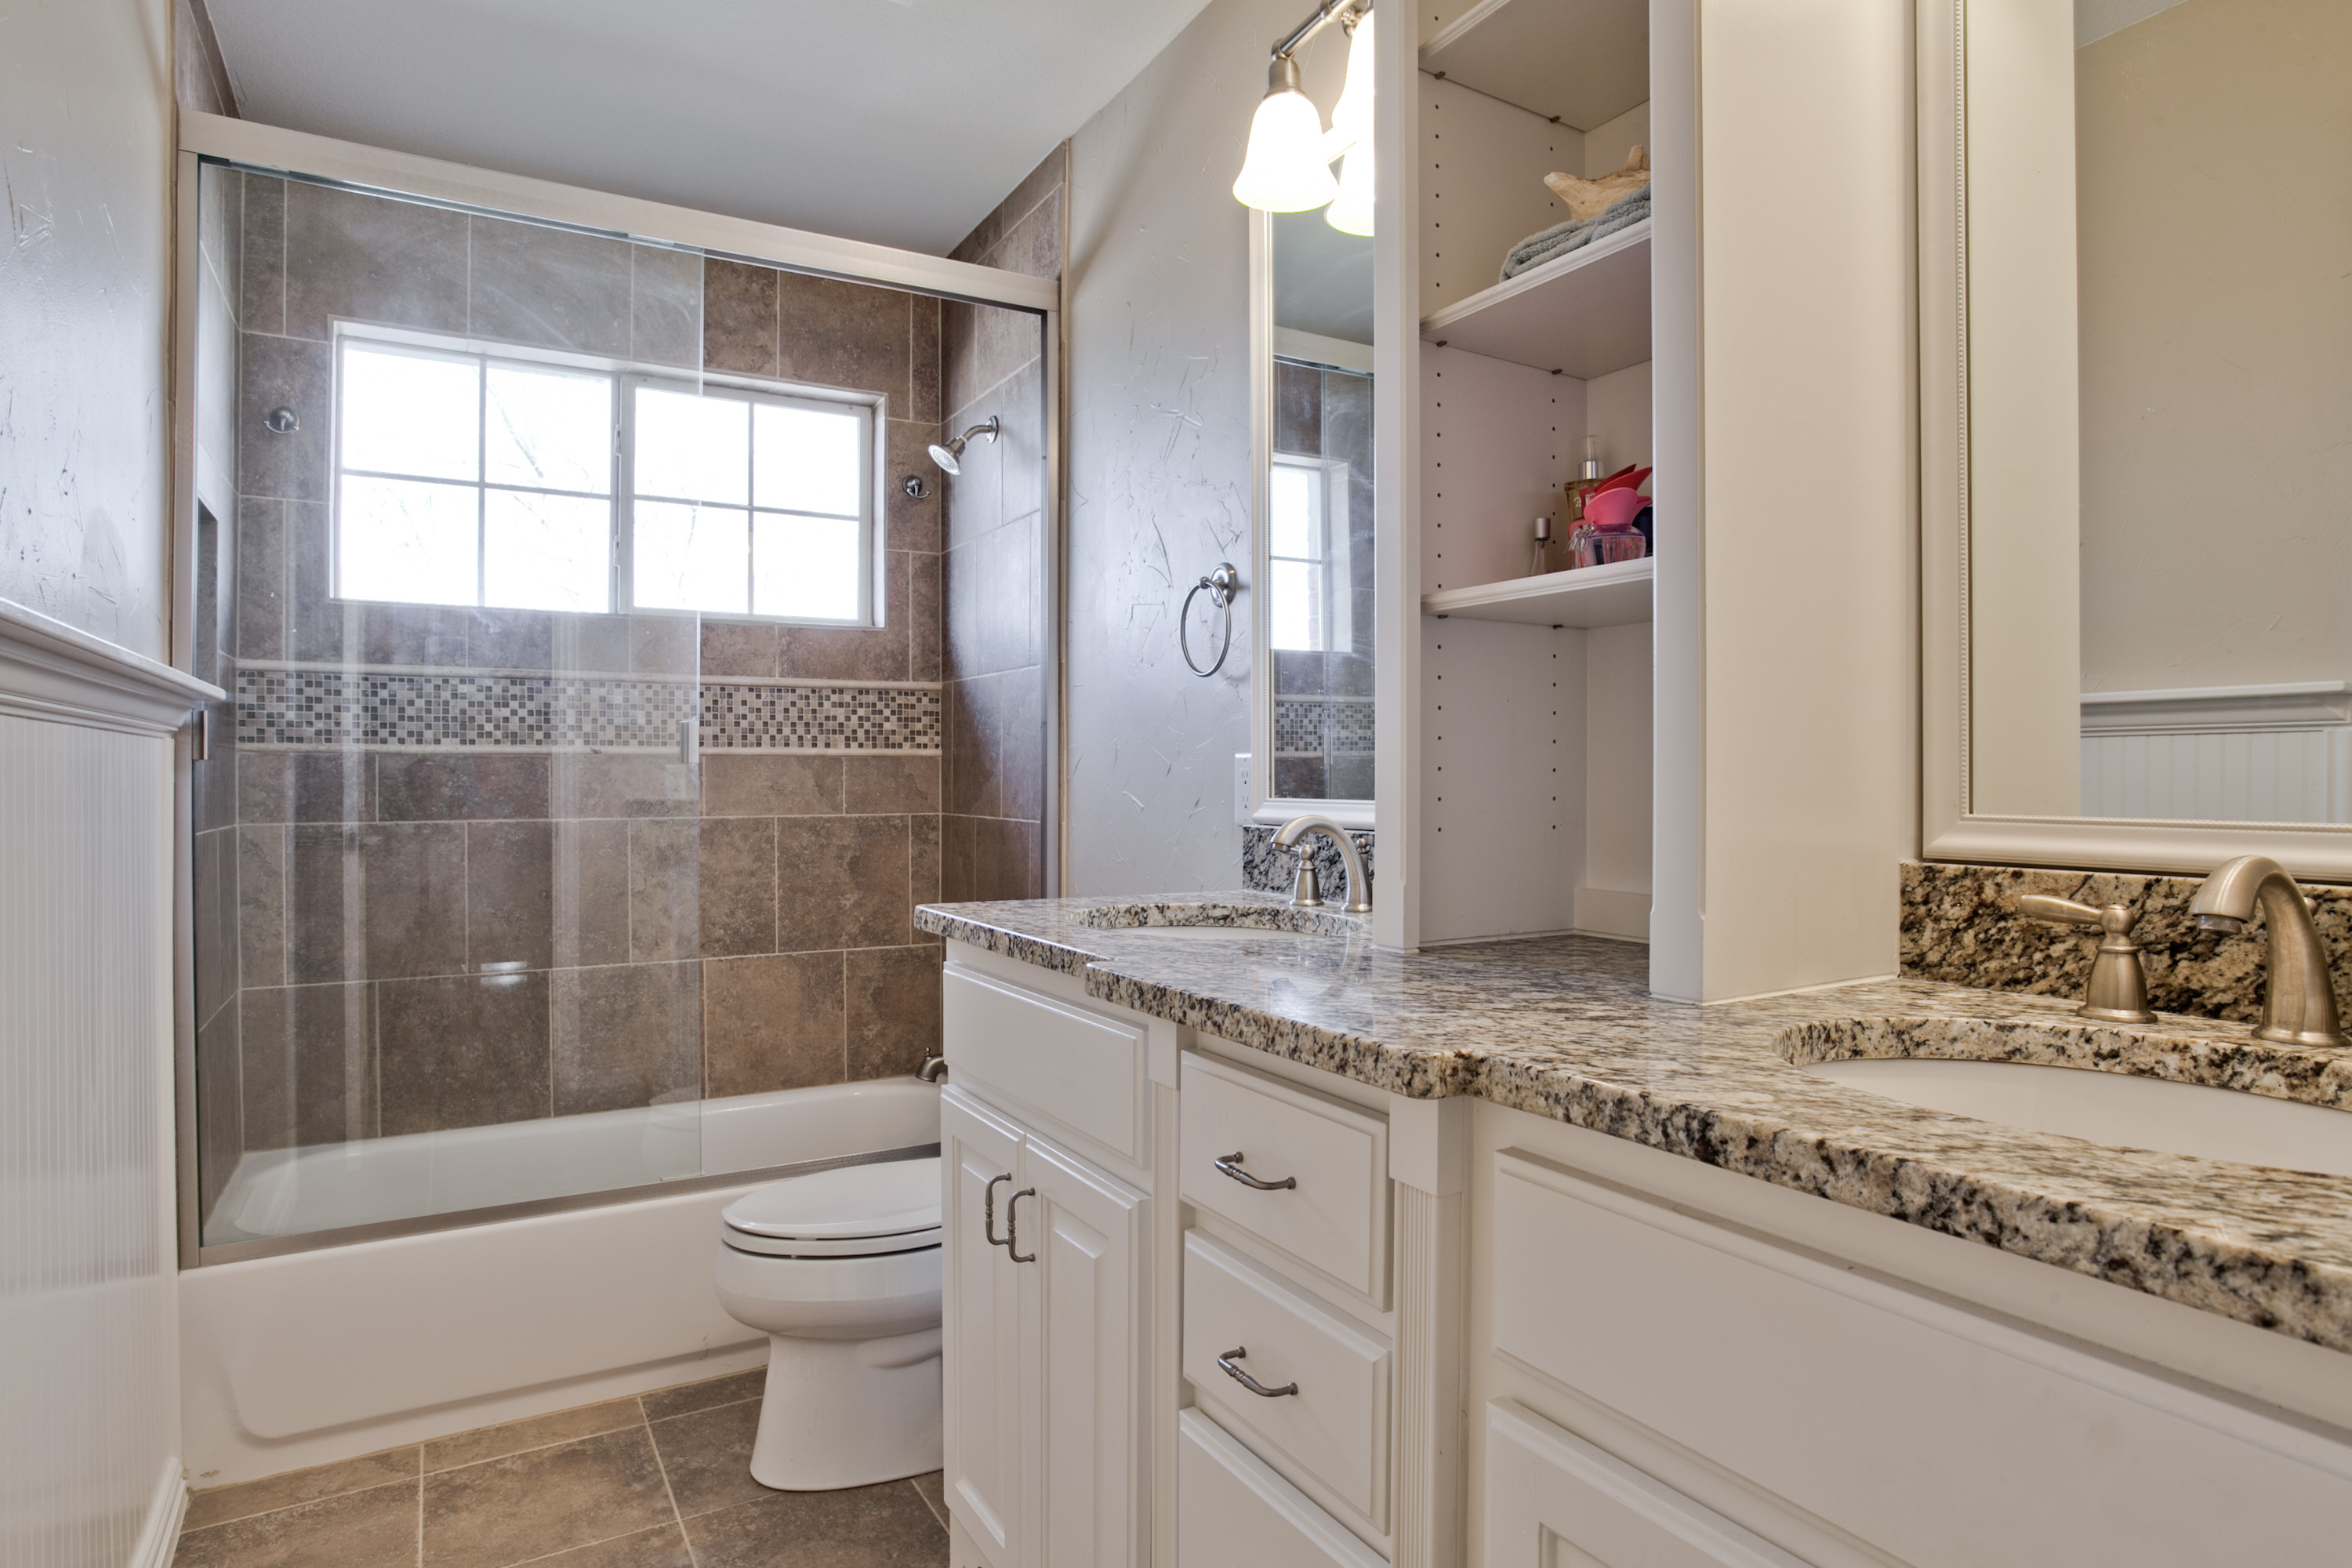 Remodel Bathroom Ideas Endearing With Master Bathroom Remodel Ideas Images